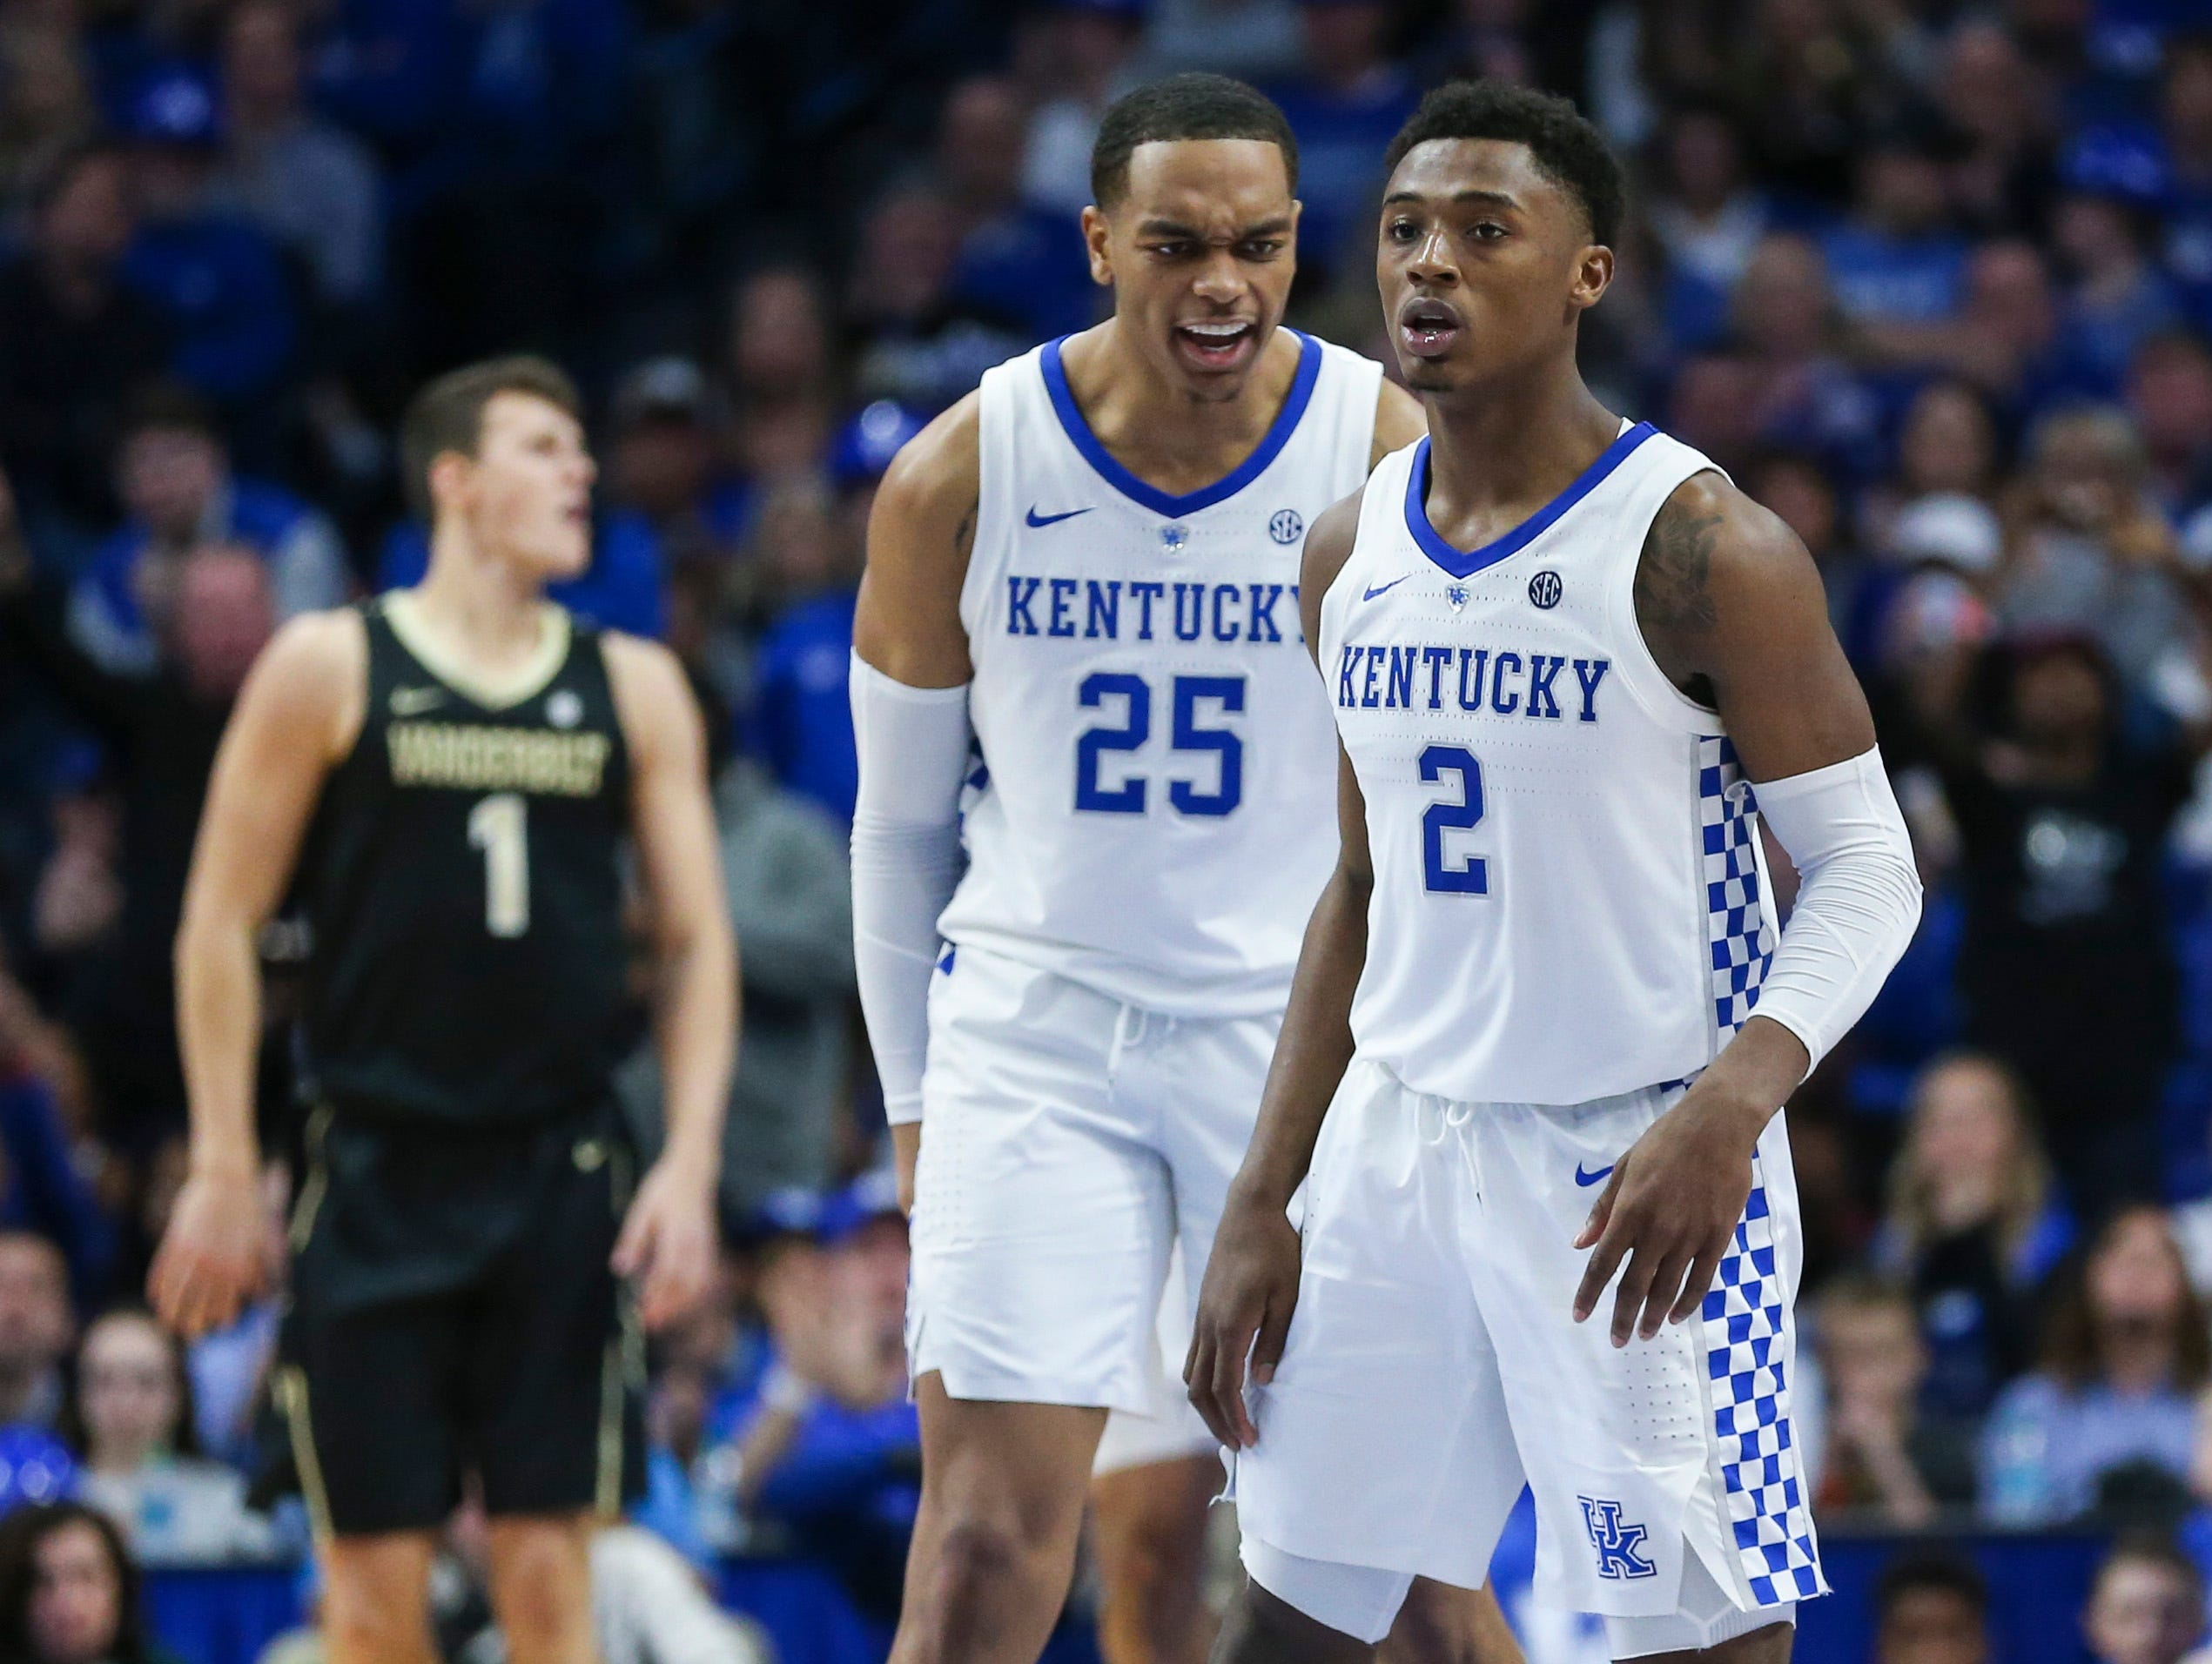 Kentucky's PJ Washington Jr. gives encouragement to teammate Ashton Hagans late in the second half against Vanderbilt. January 12, 2019